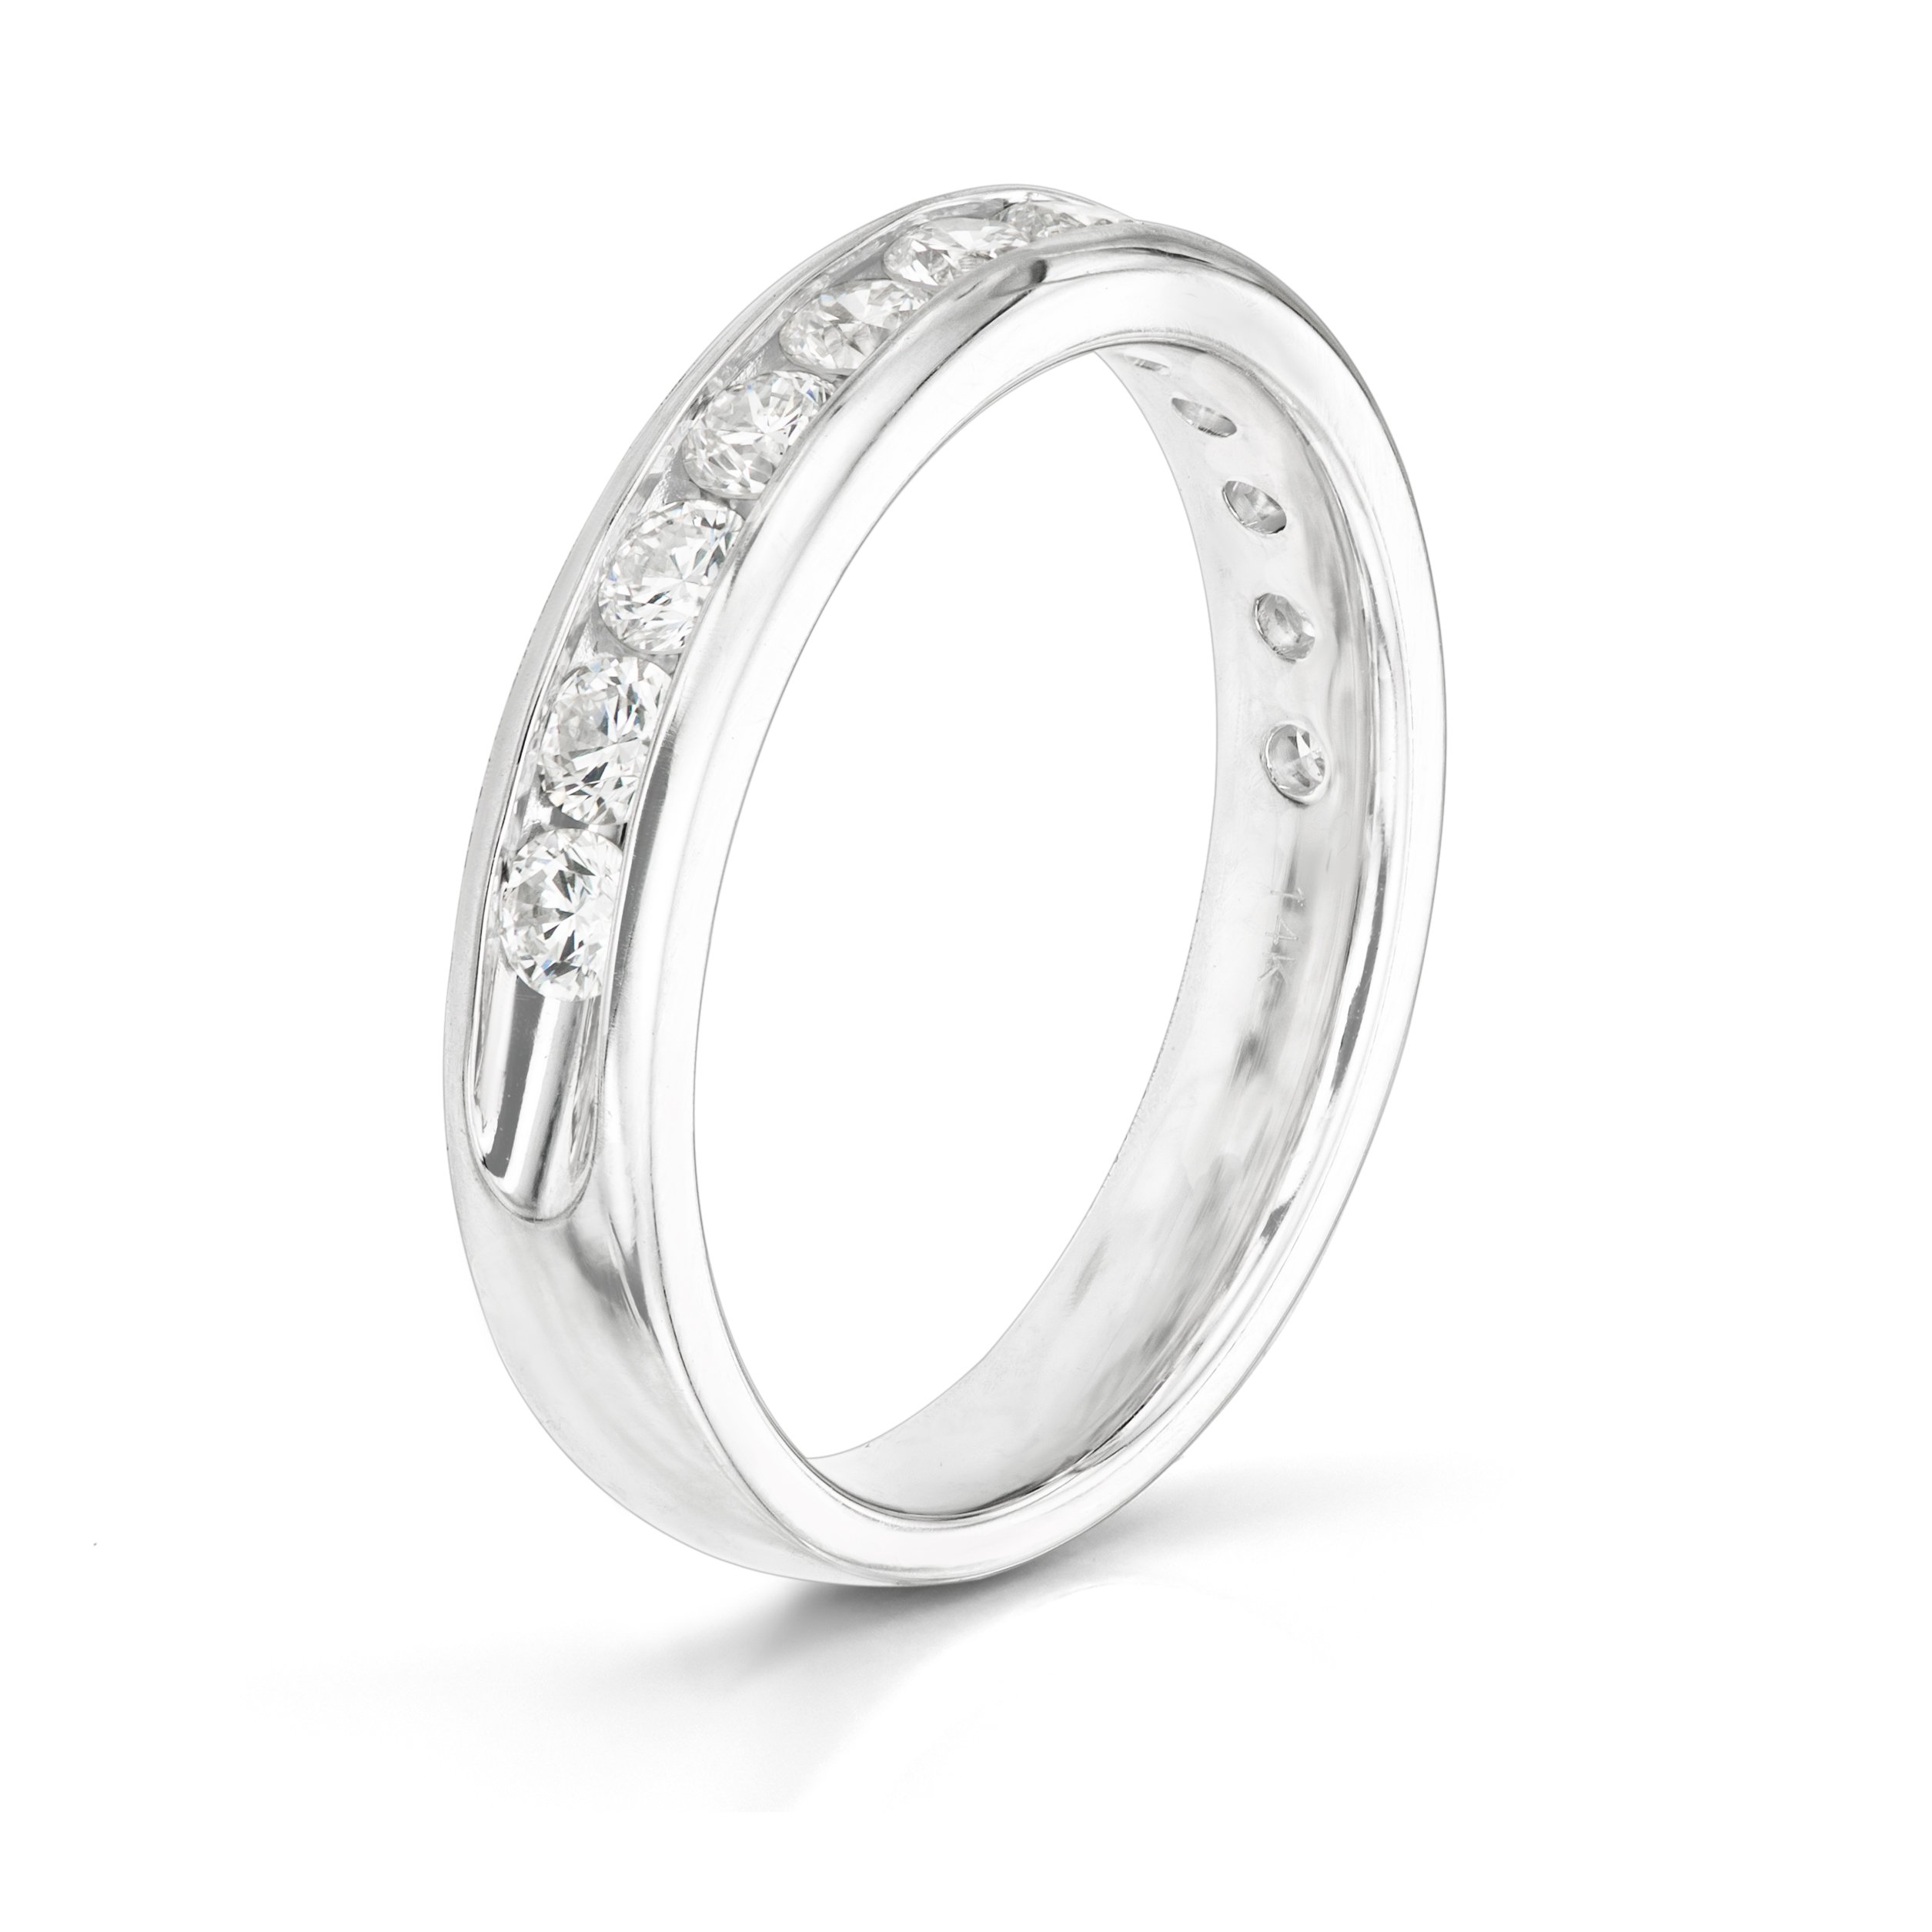 14KT White Gold 0.5ct G-I SI1/SI2 Channel Machine Set Wedding Ring by Uncle Sam's Collection (Image #3)